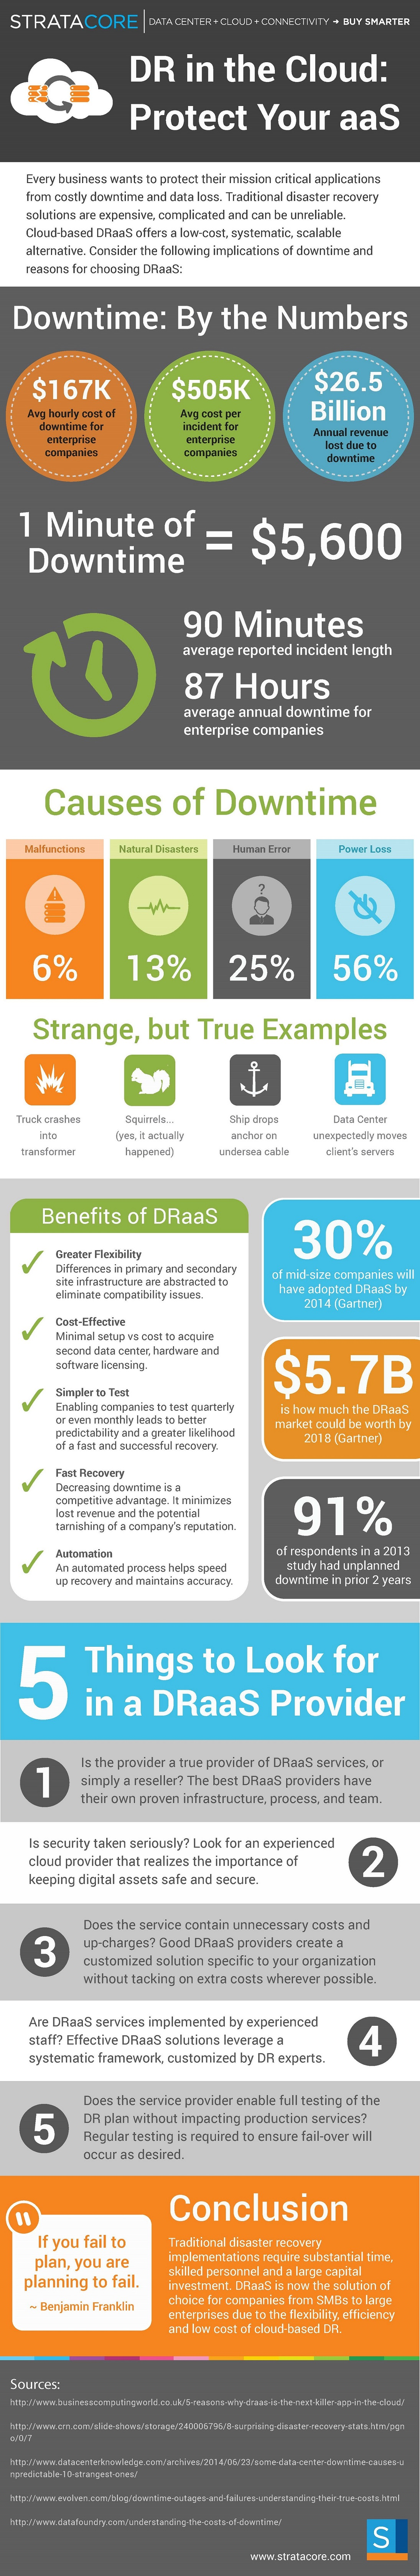 DRaaS_Infographic-1